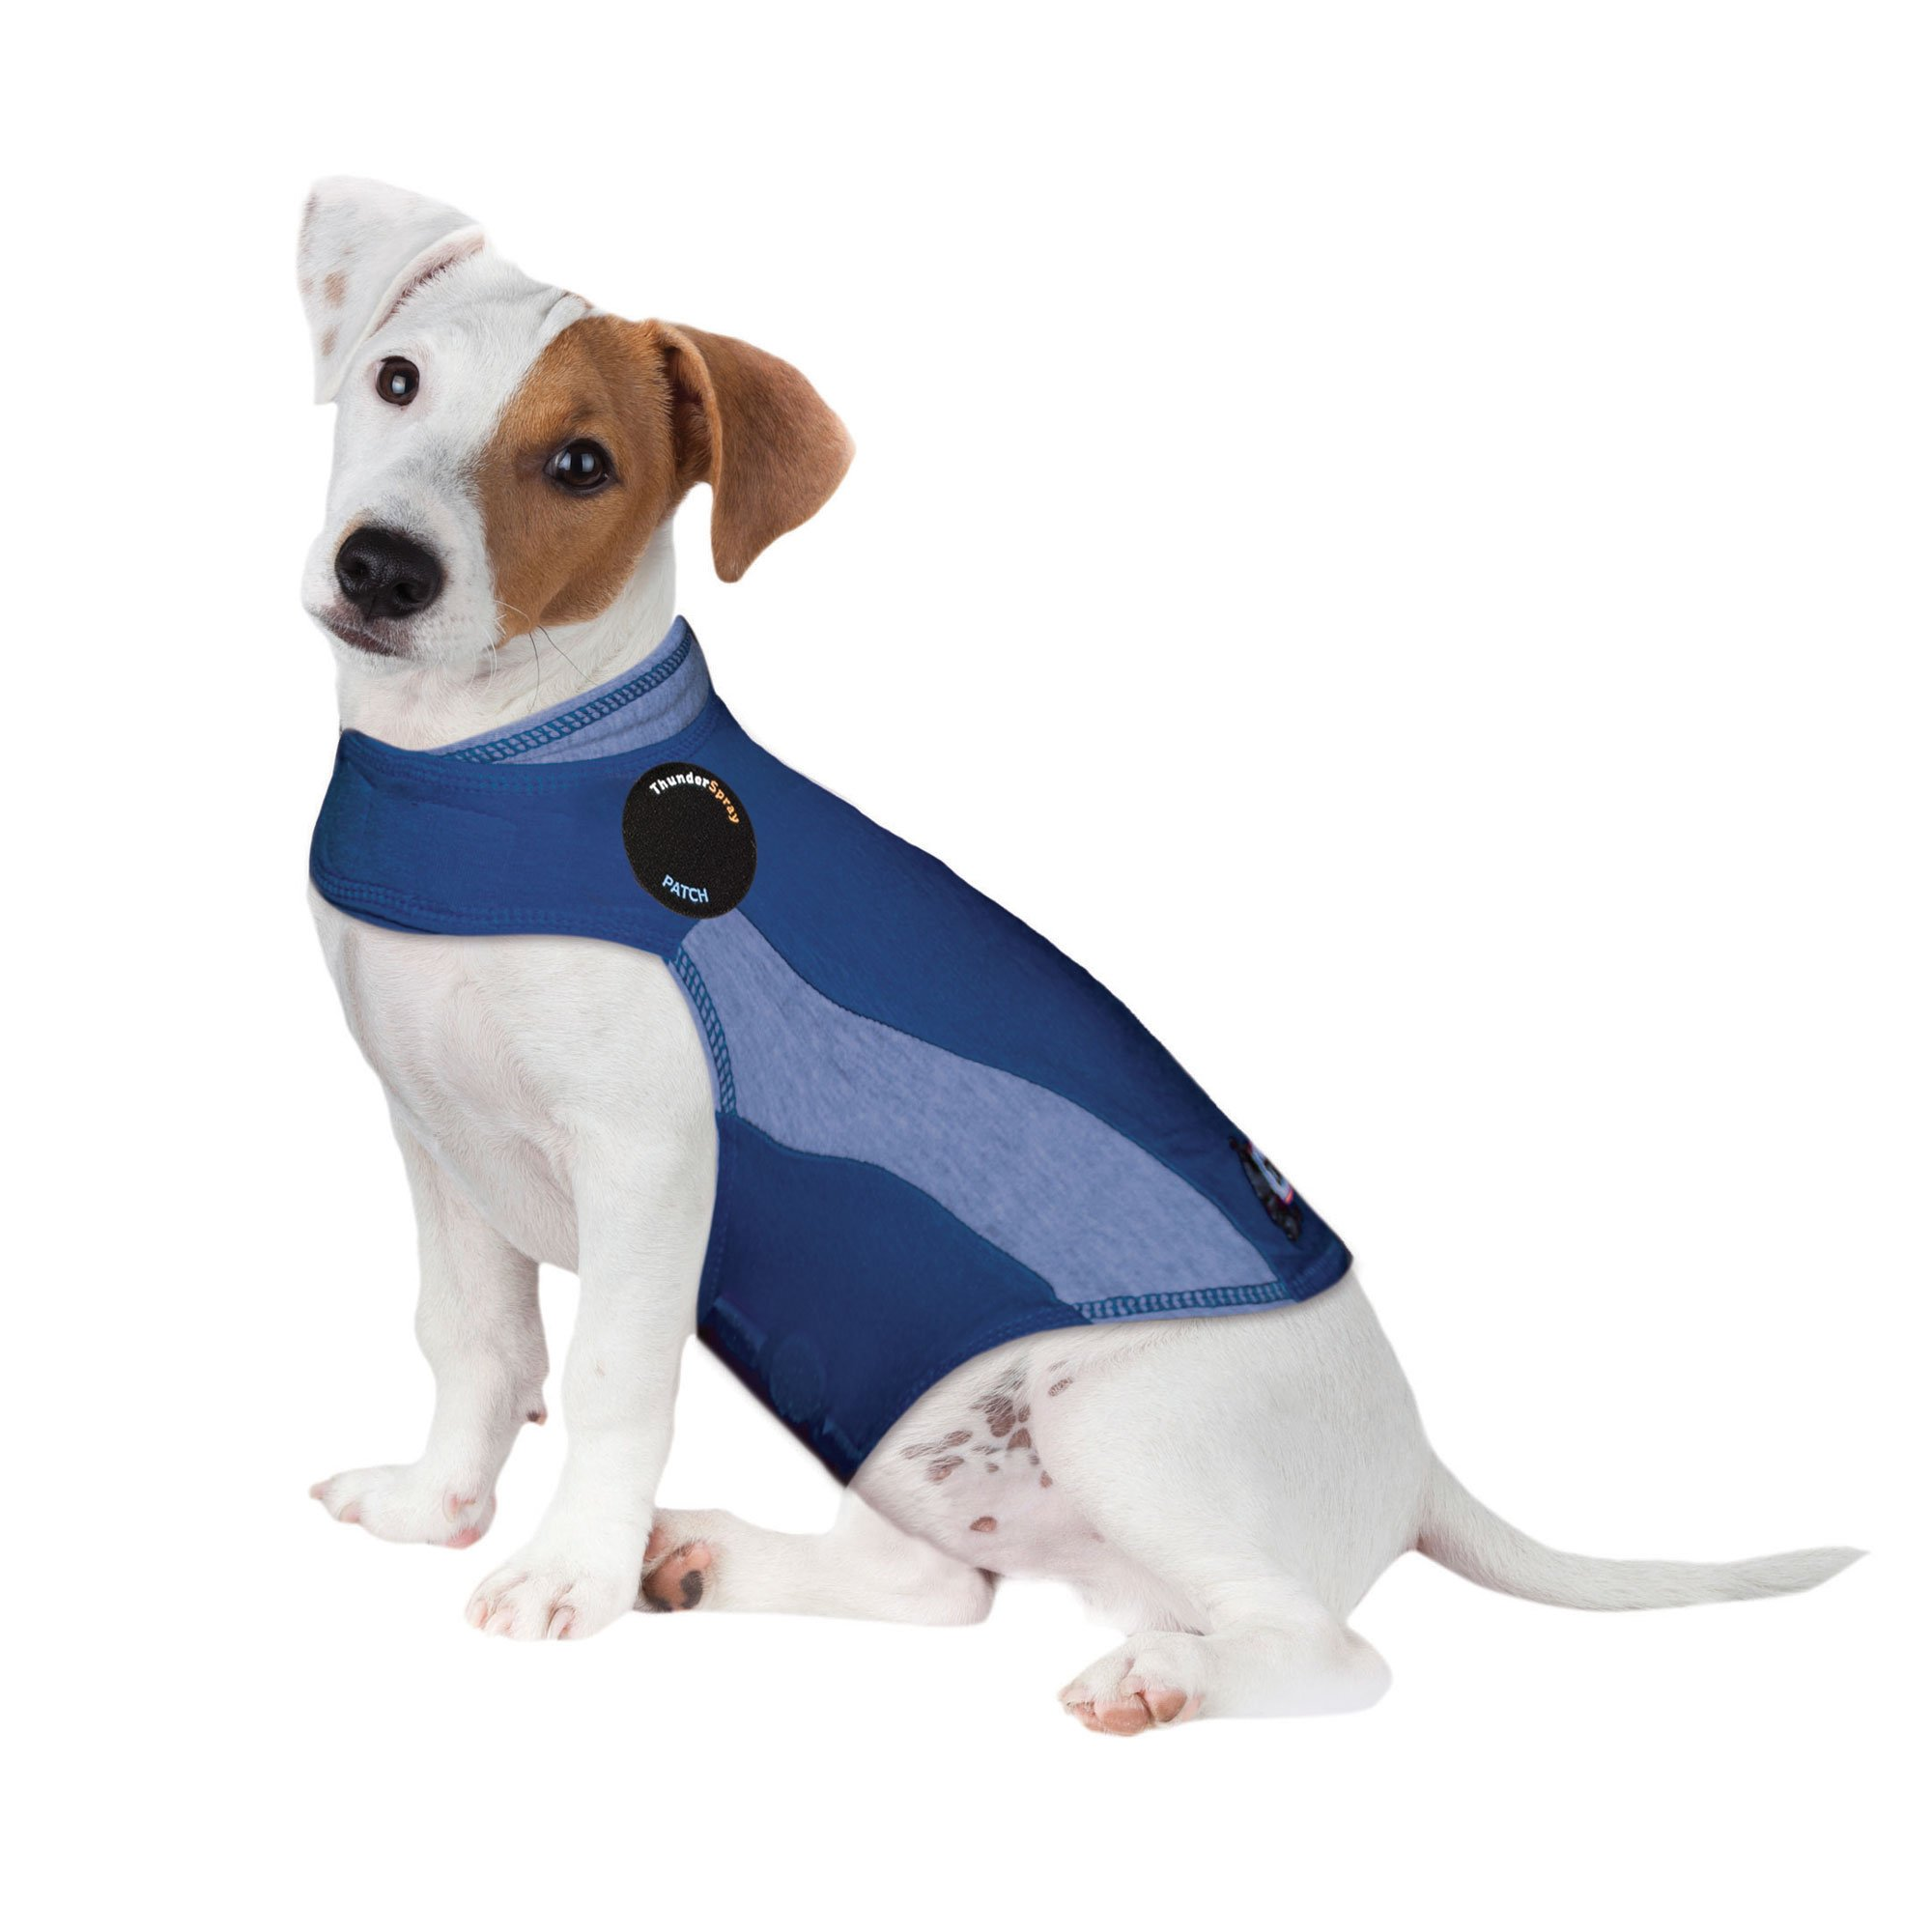 ThunderShirt Polo Dog Anxiety Jacket, Blue, Small by Thundershirt